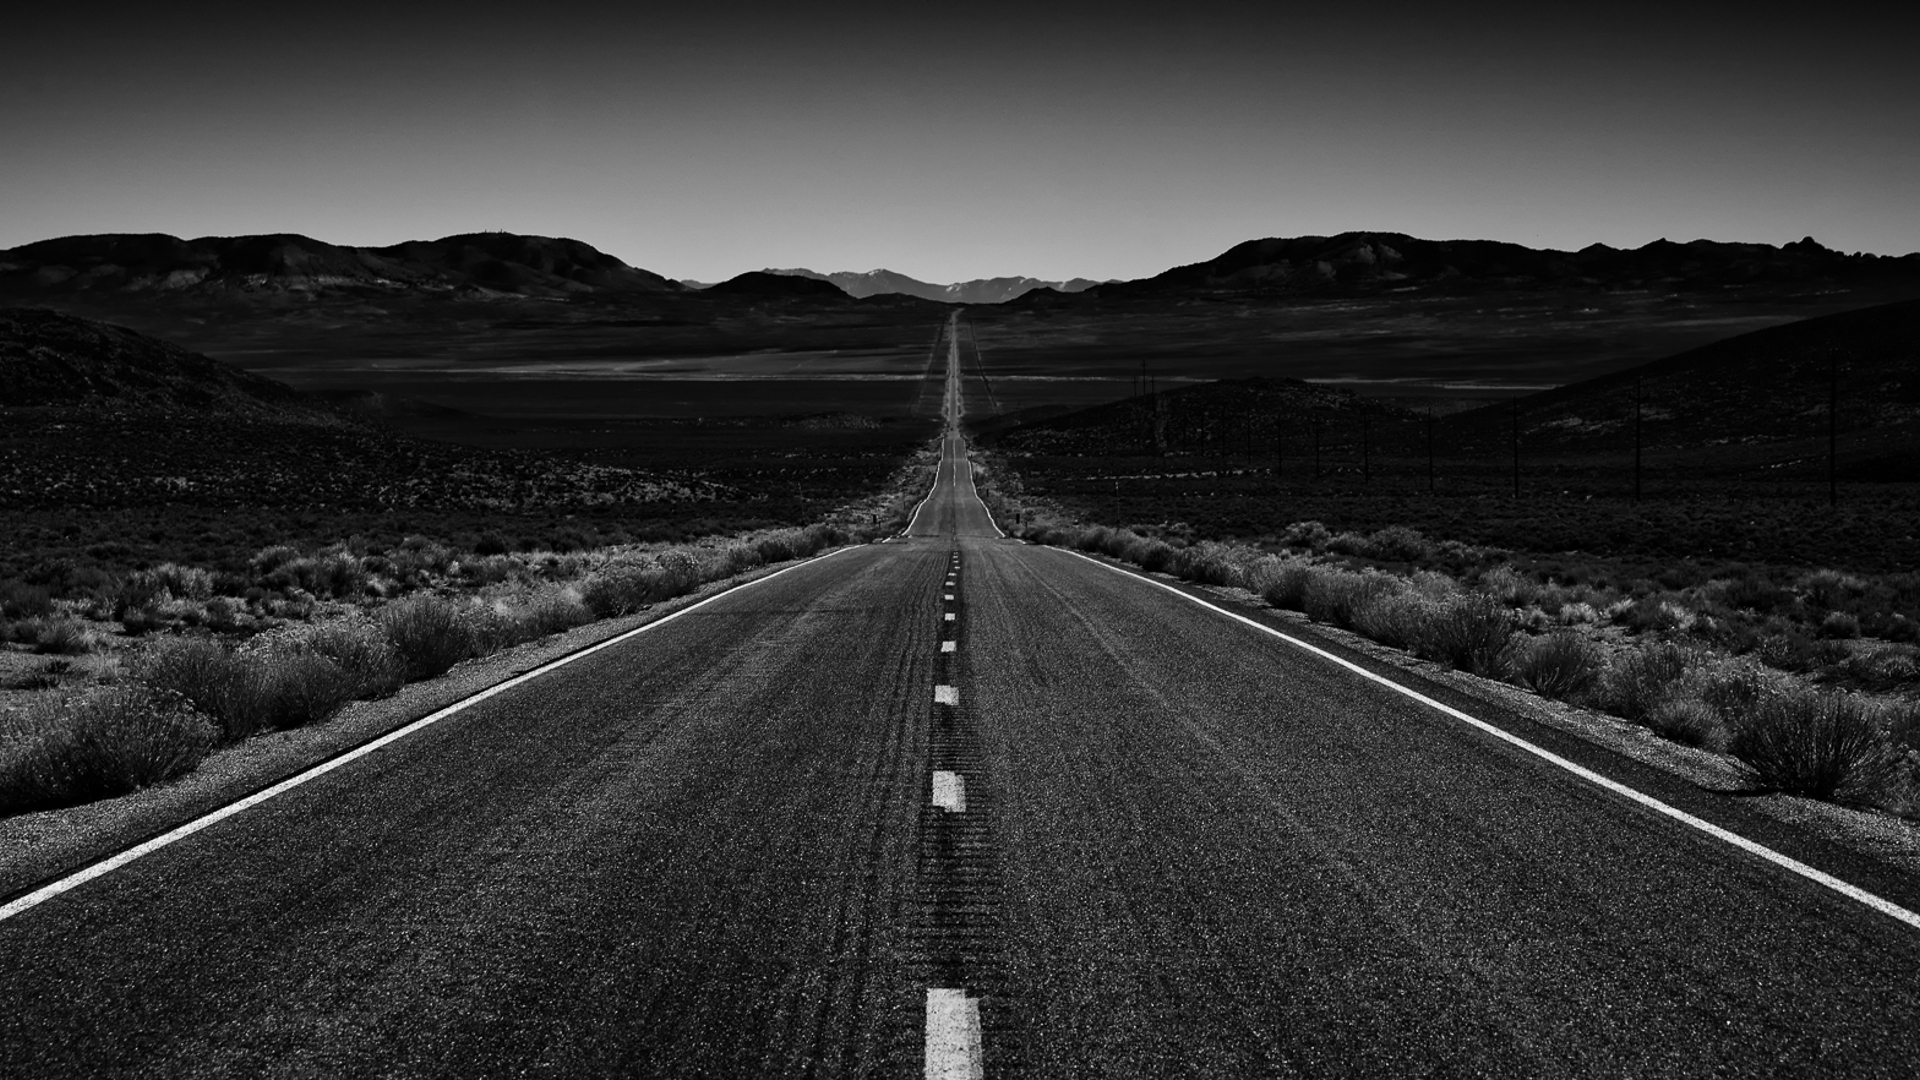 1440x900 Endless Road 1440x900 Wallpaper Hd Other 4k Wallpapers Images Photos And Background